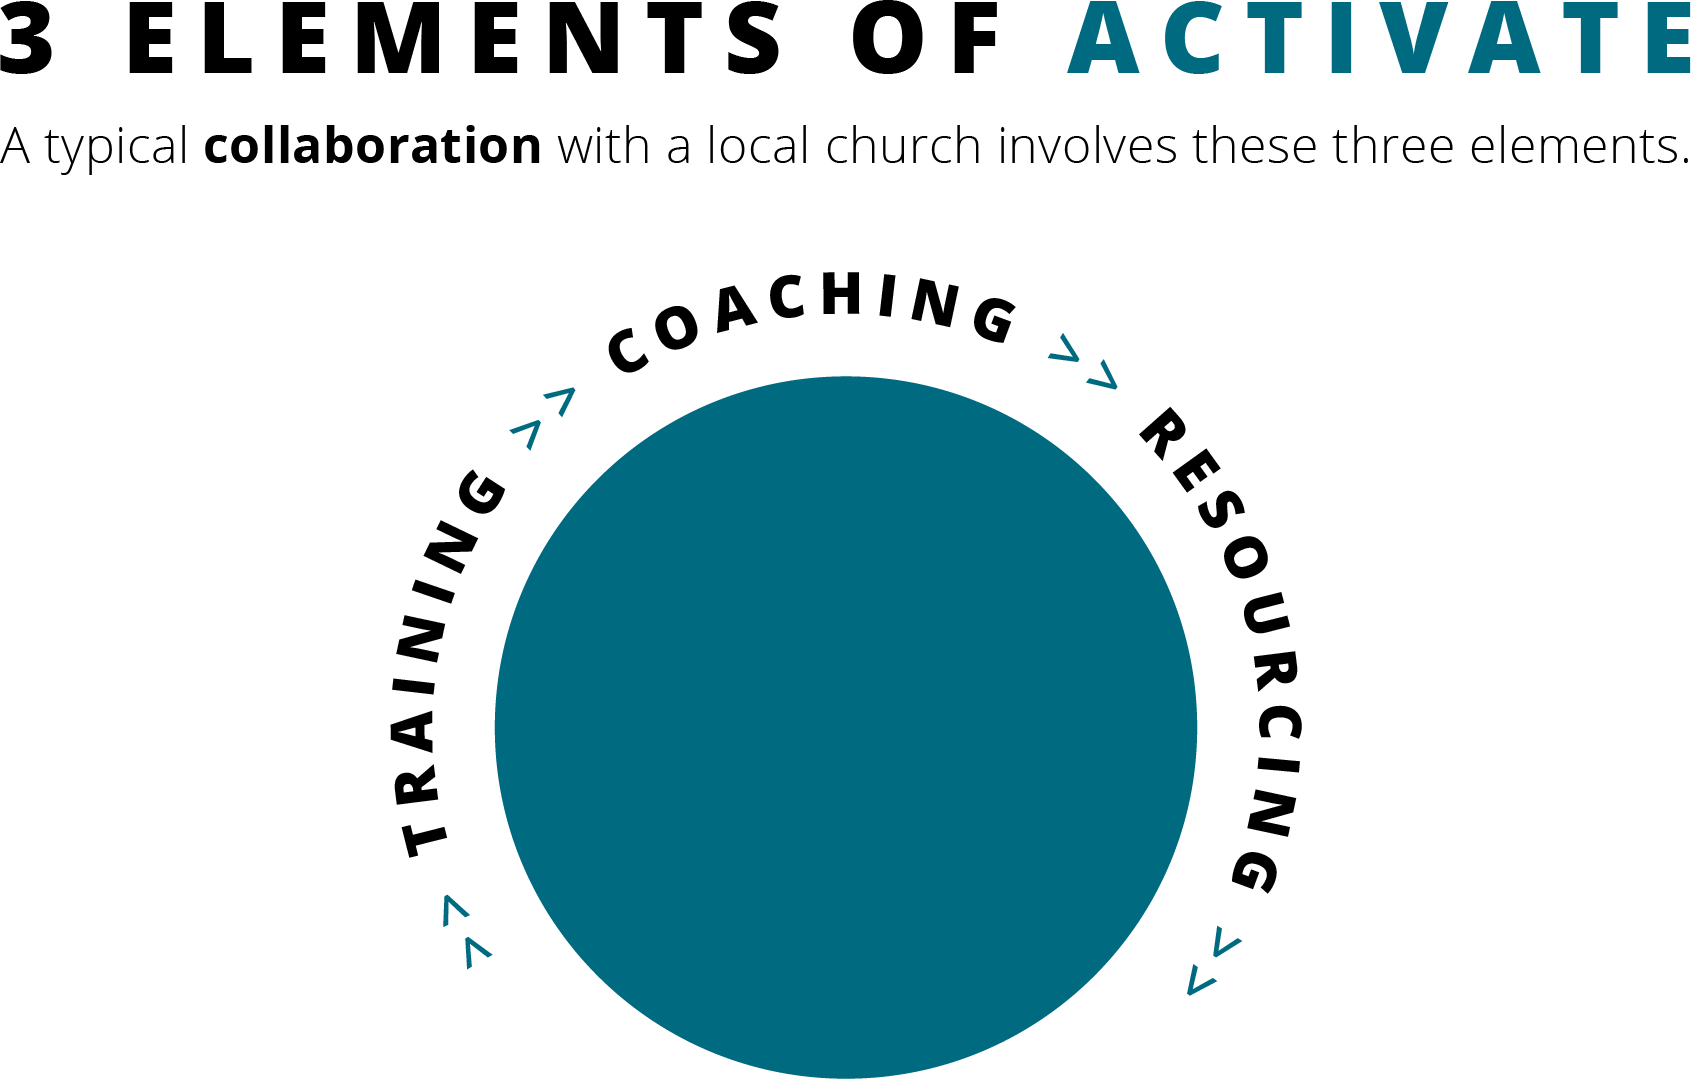 3 Elements of Activate